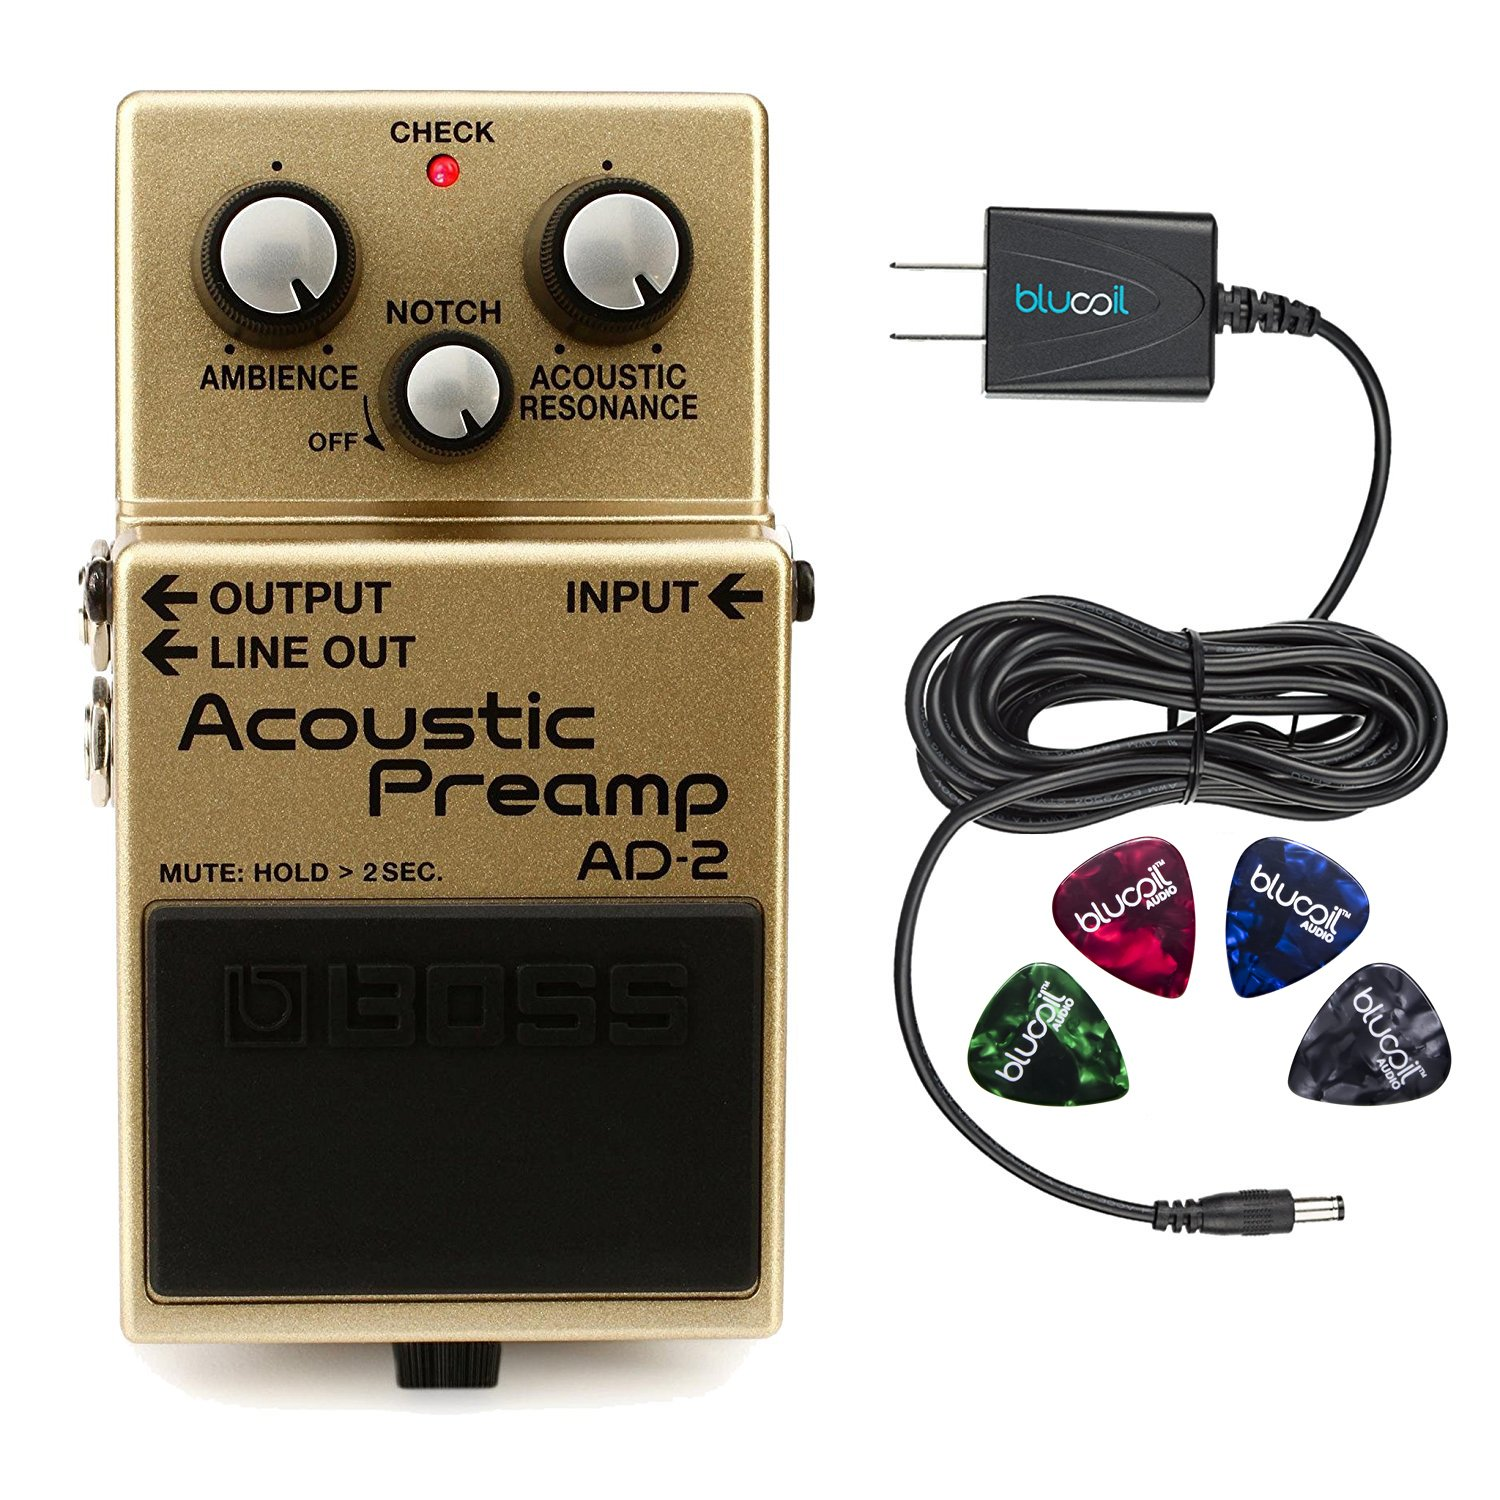 Boss AD-2 Acoustic Preamp Pedal –INCLUDES– Blucoil Power Supply Slim AC/DC Adapter for 9 Volt DC 670mA AND 4 Pack of Guitar Picks